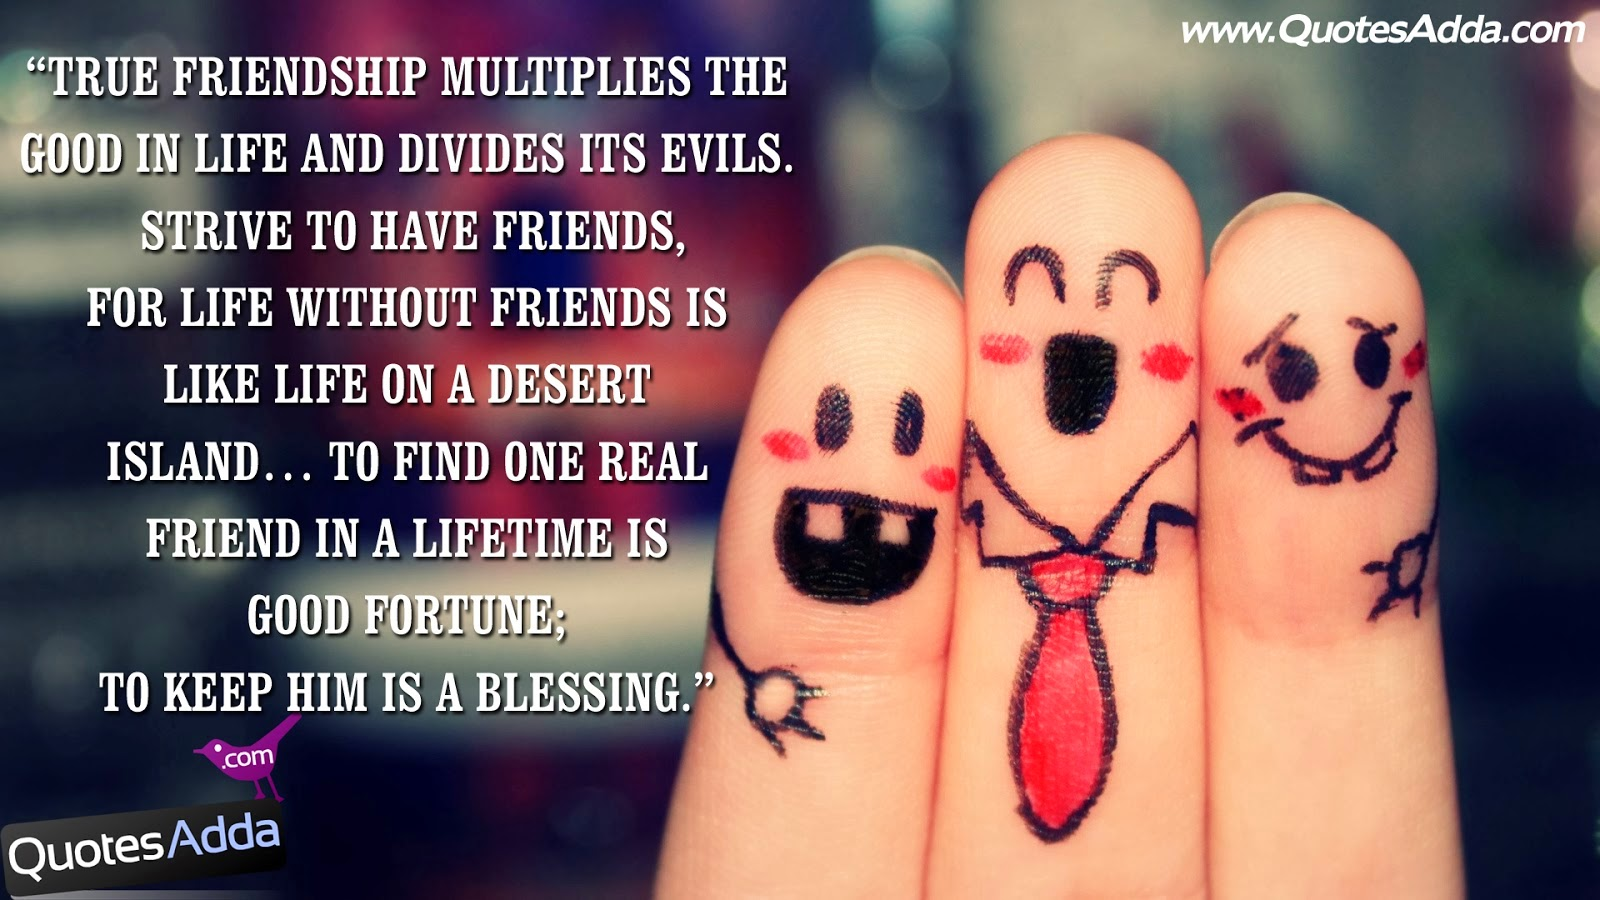 True Friendship Multiplies The Good In Life And Divides Its Evils. Strive  To Have Friends, For Life Without Friends Is Like A Life On A Desert Island.